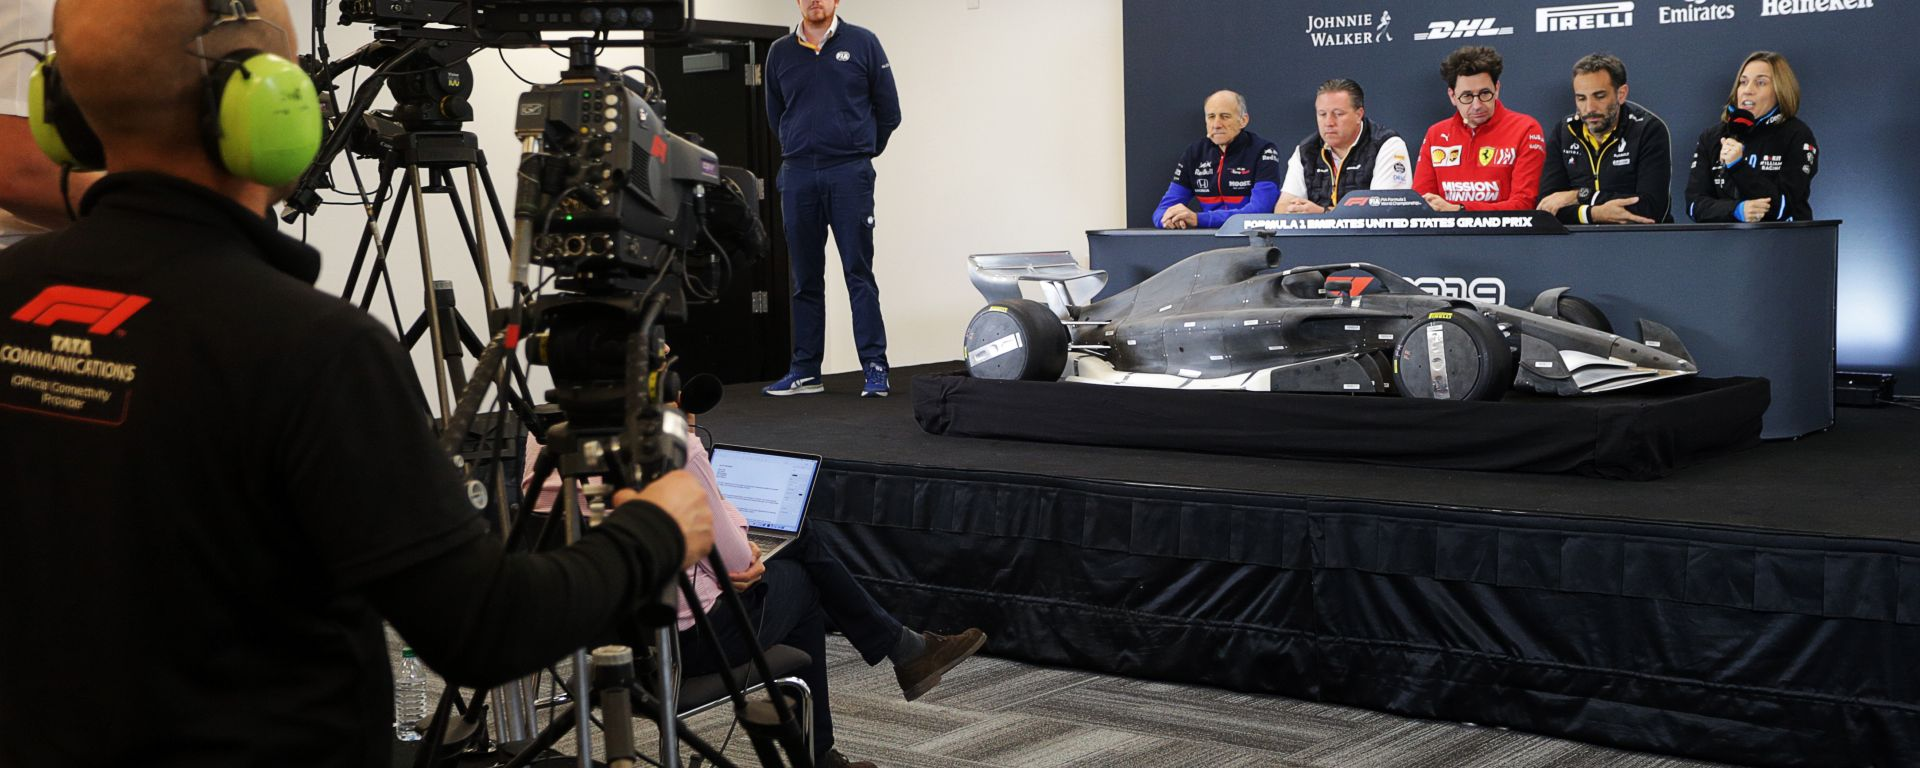 F1 2019, un cameraman di Tata Communications durante una conferenza stampa